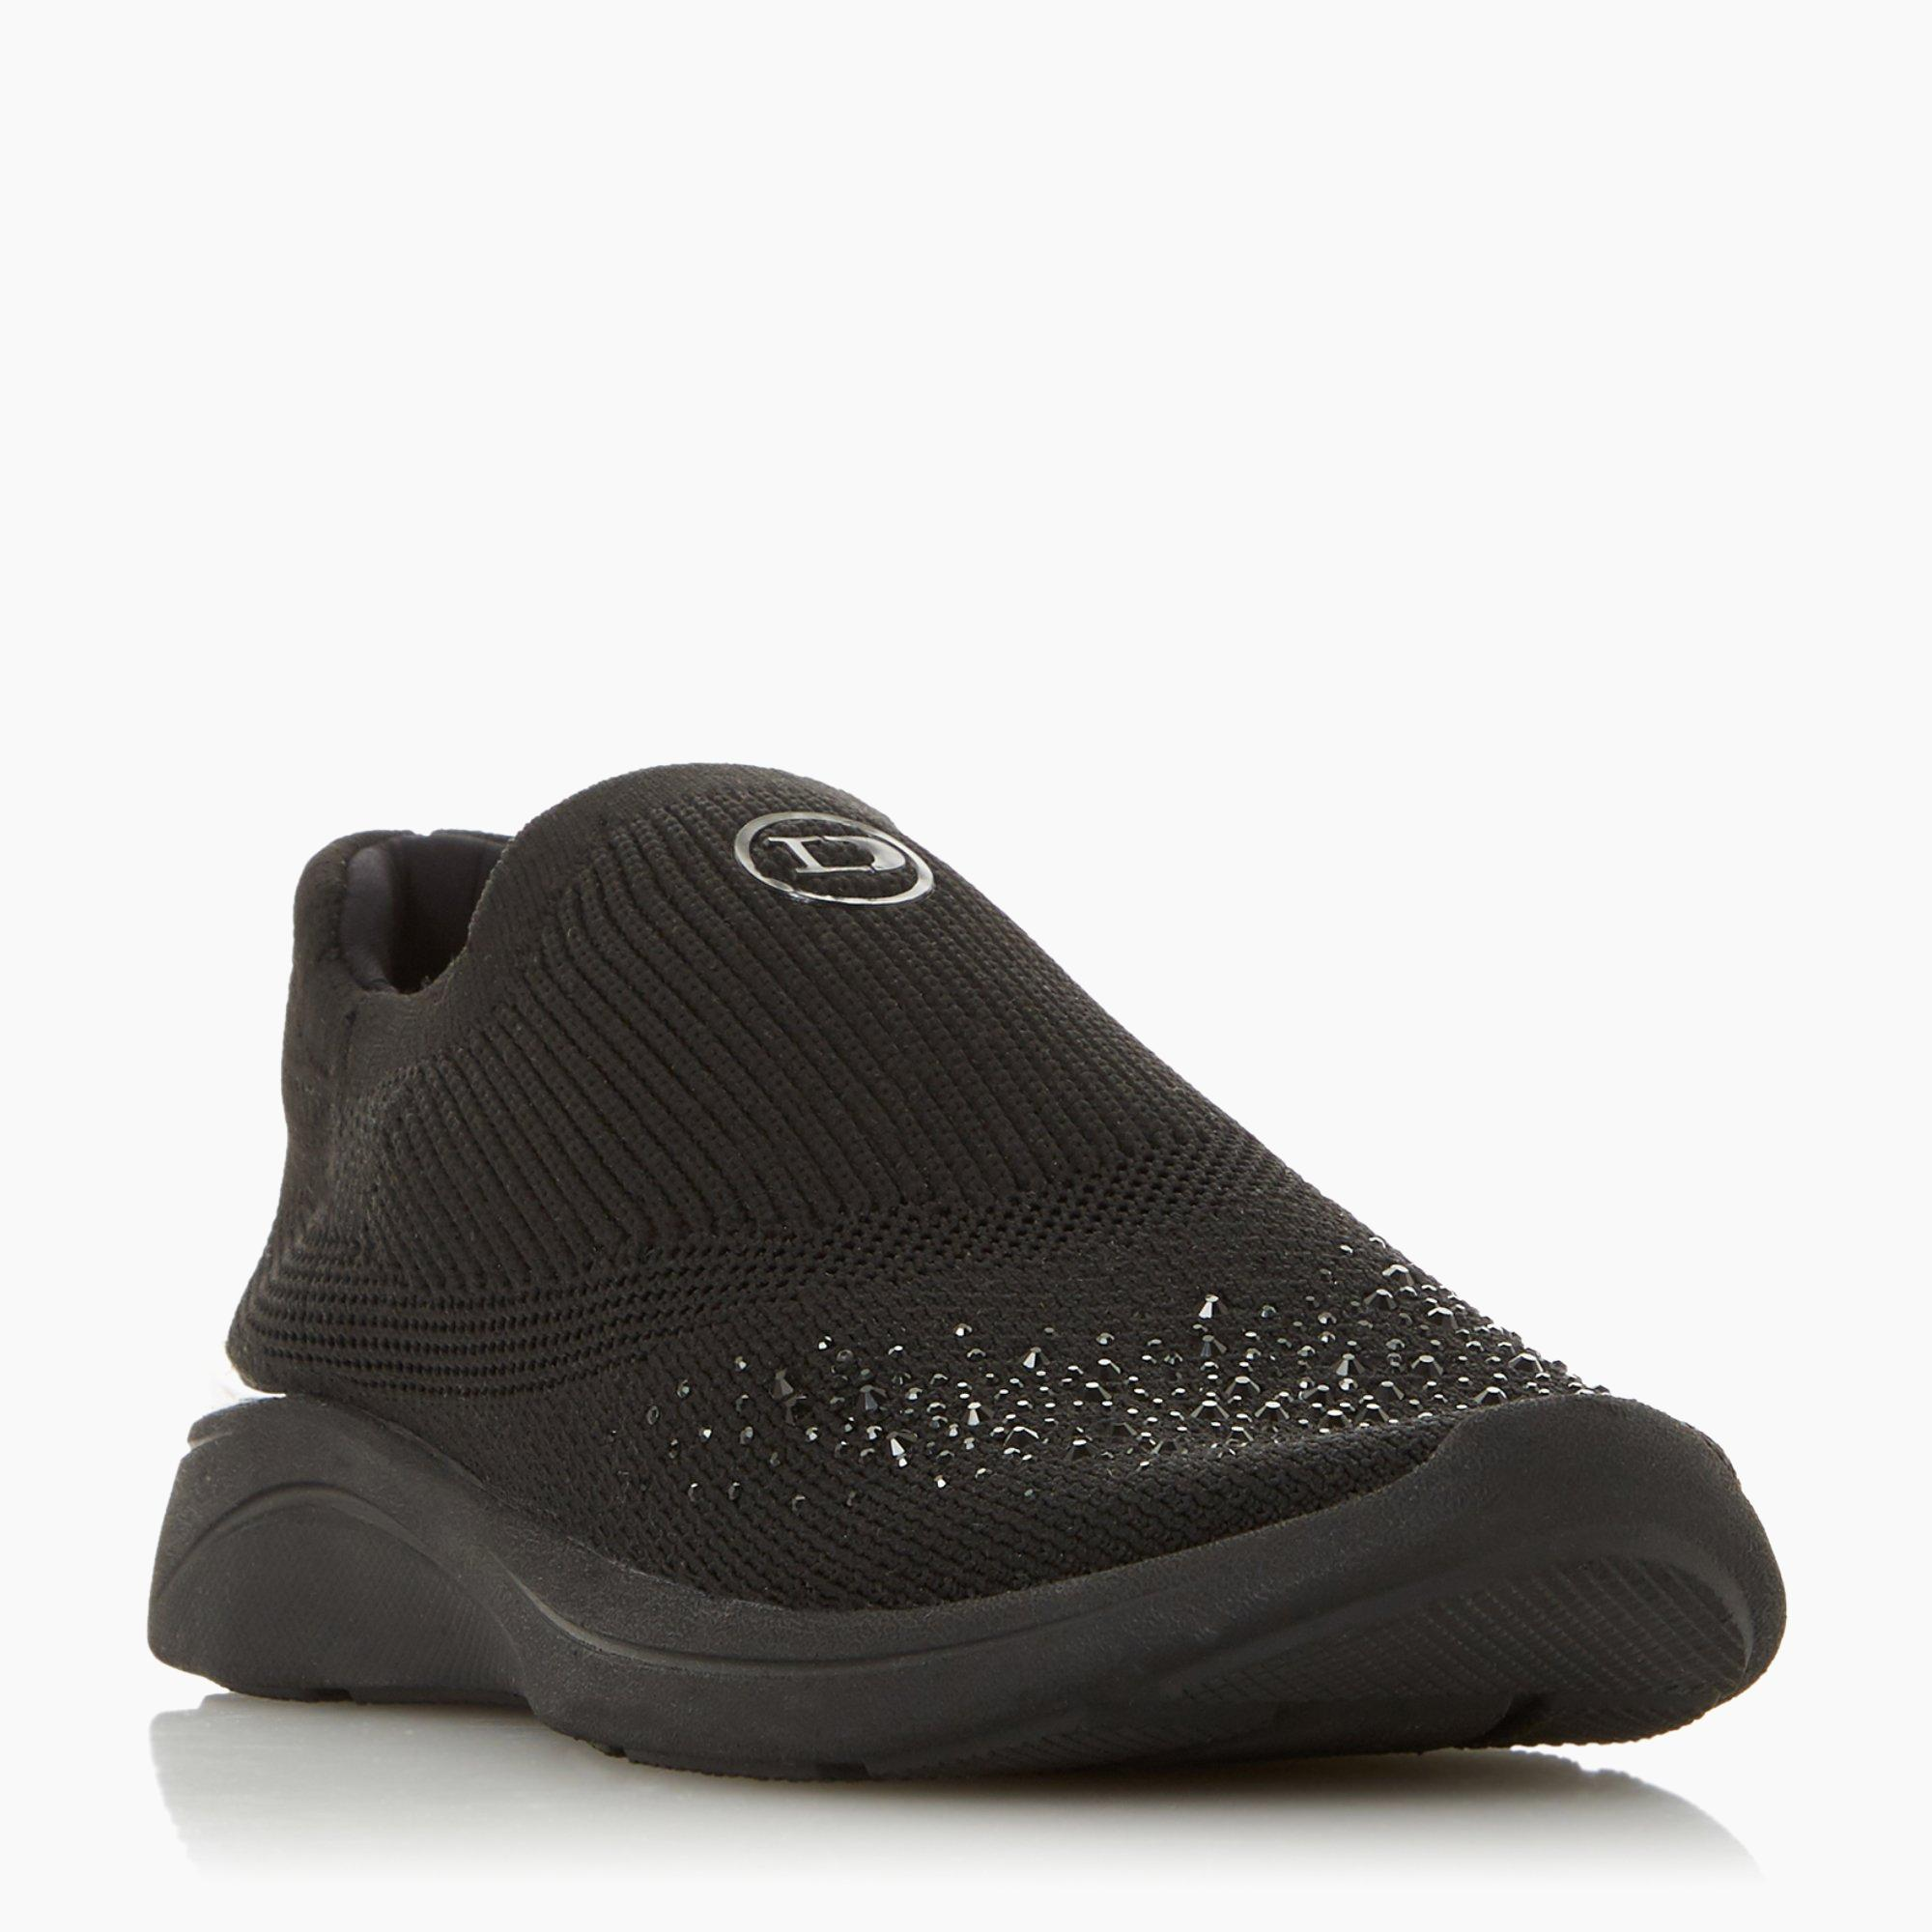 Easy Slip On - Black Synthetic